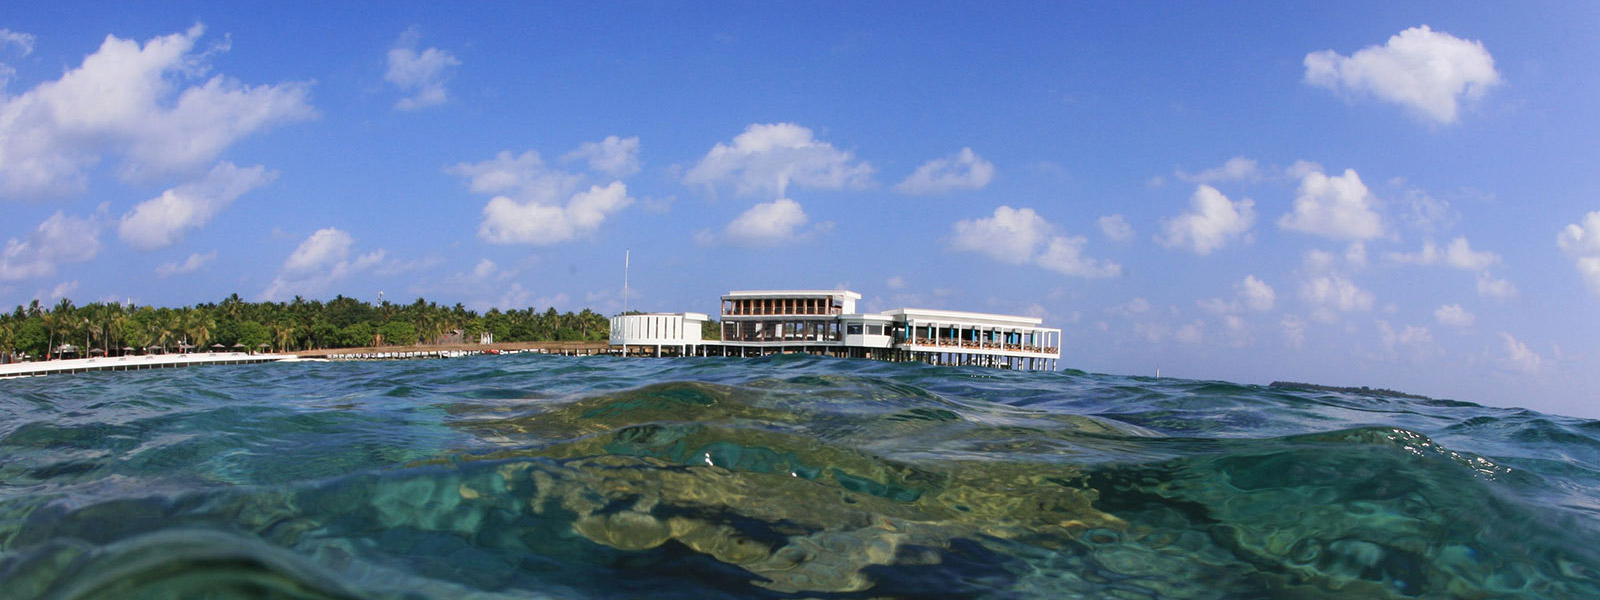 Maldives Luxury Diving Resort